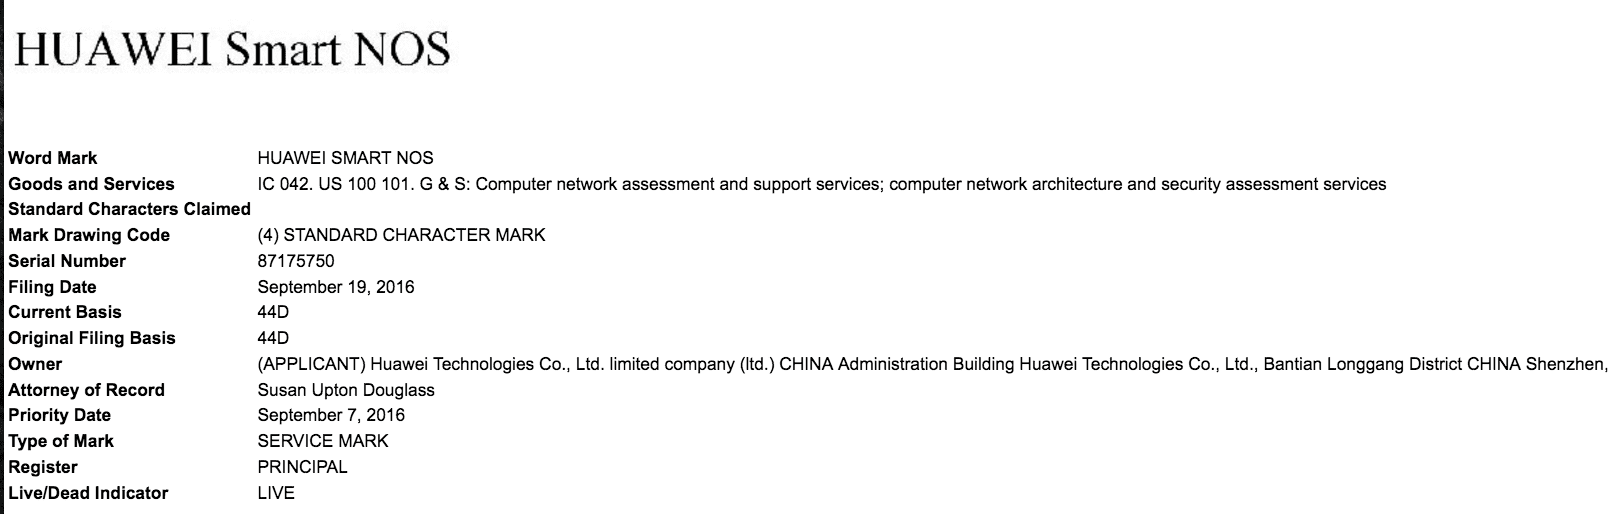 huawei-smart-nos-trademark-application-in-the-us-huawei-huawei-smartnos